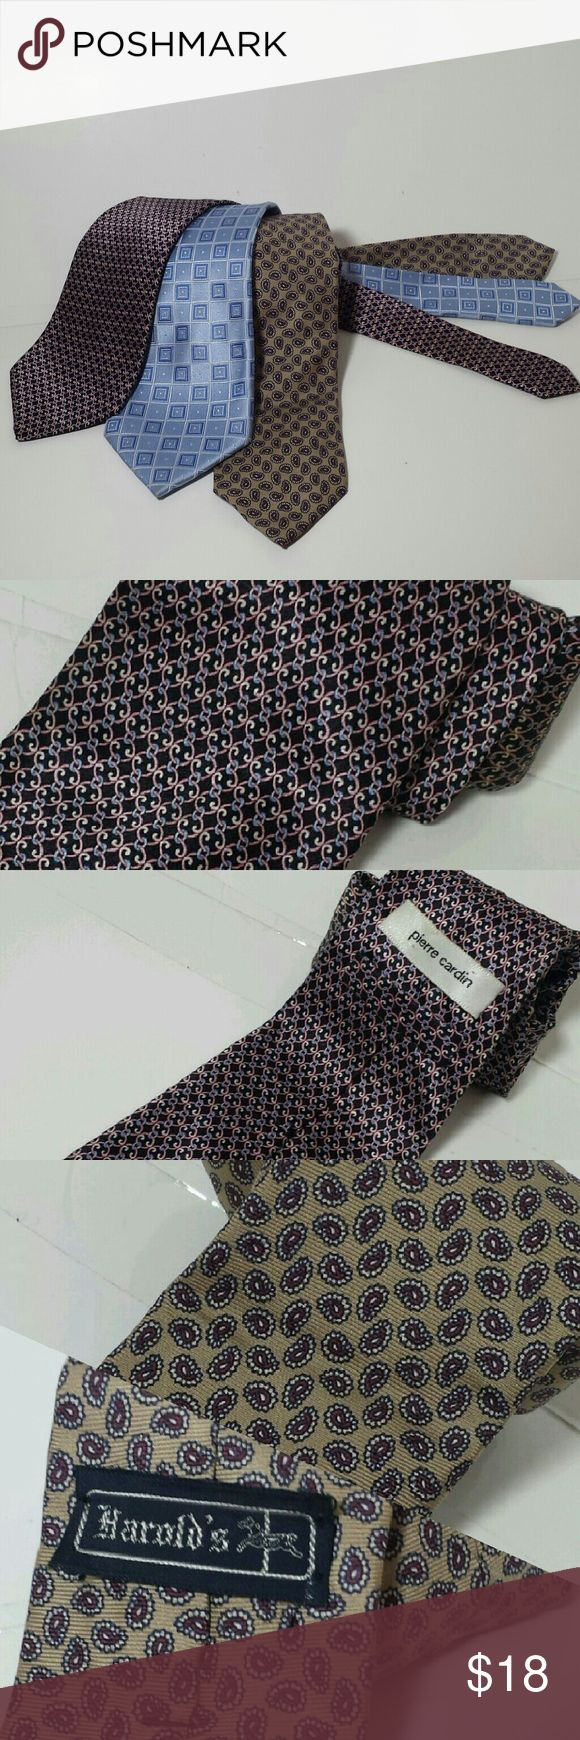 Three 100% Silk Ties w/ a Trump brand necktie Pierre Cardin Black backgroud with blue & pink print. 3.5W x 62L  Harrolds. Tan background with burgandy print. 3.5W x 52L  Donald Trump. Light blue backgound with navy blue and white print. 3.5W x 62L.  Sold separately $9 each Pierre Cardin Accessories Ties